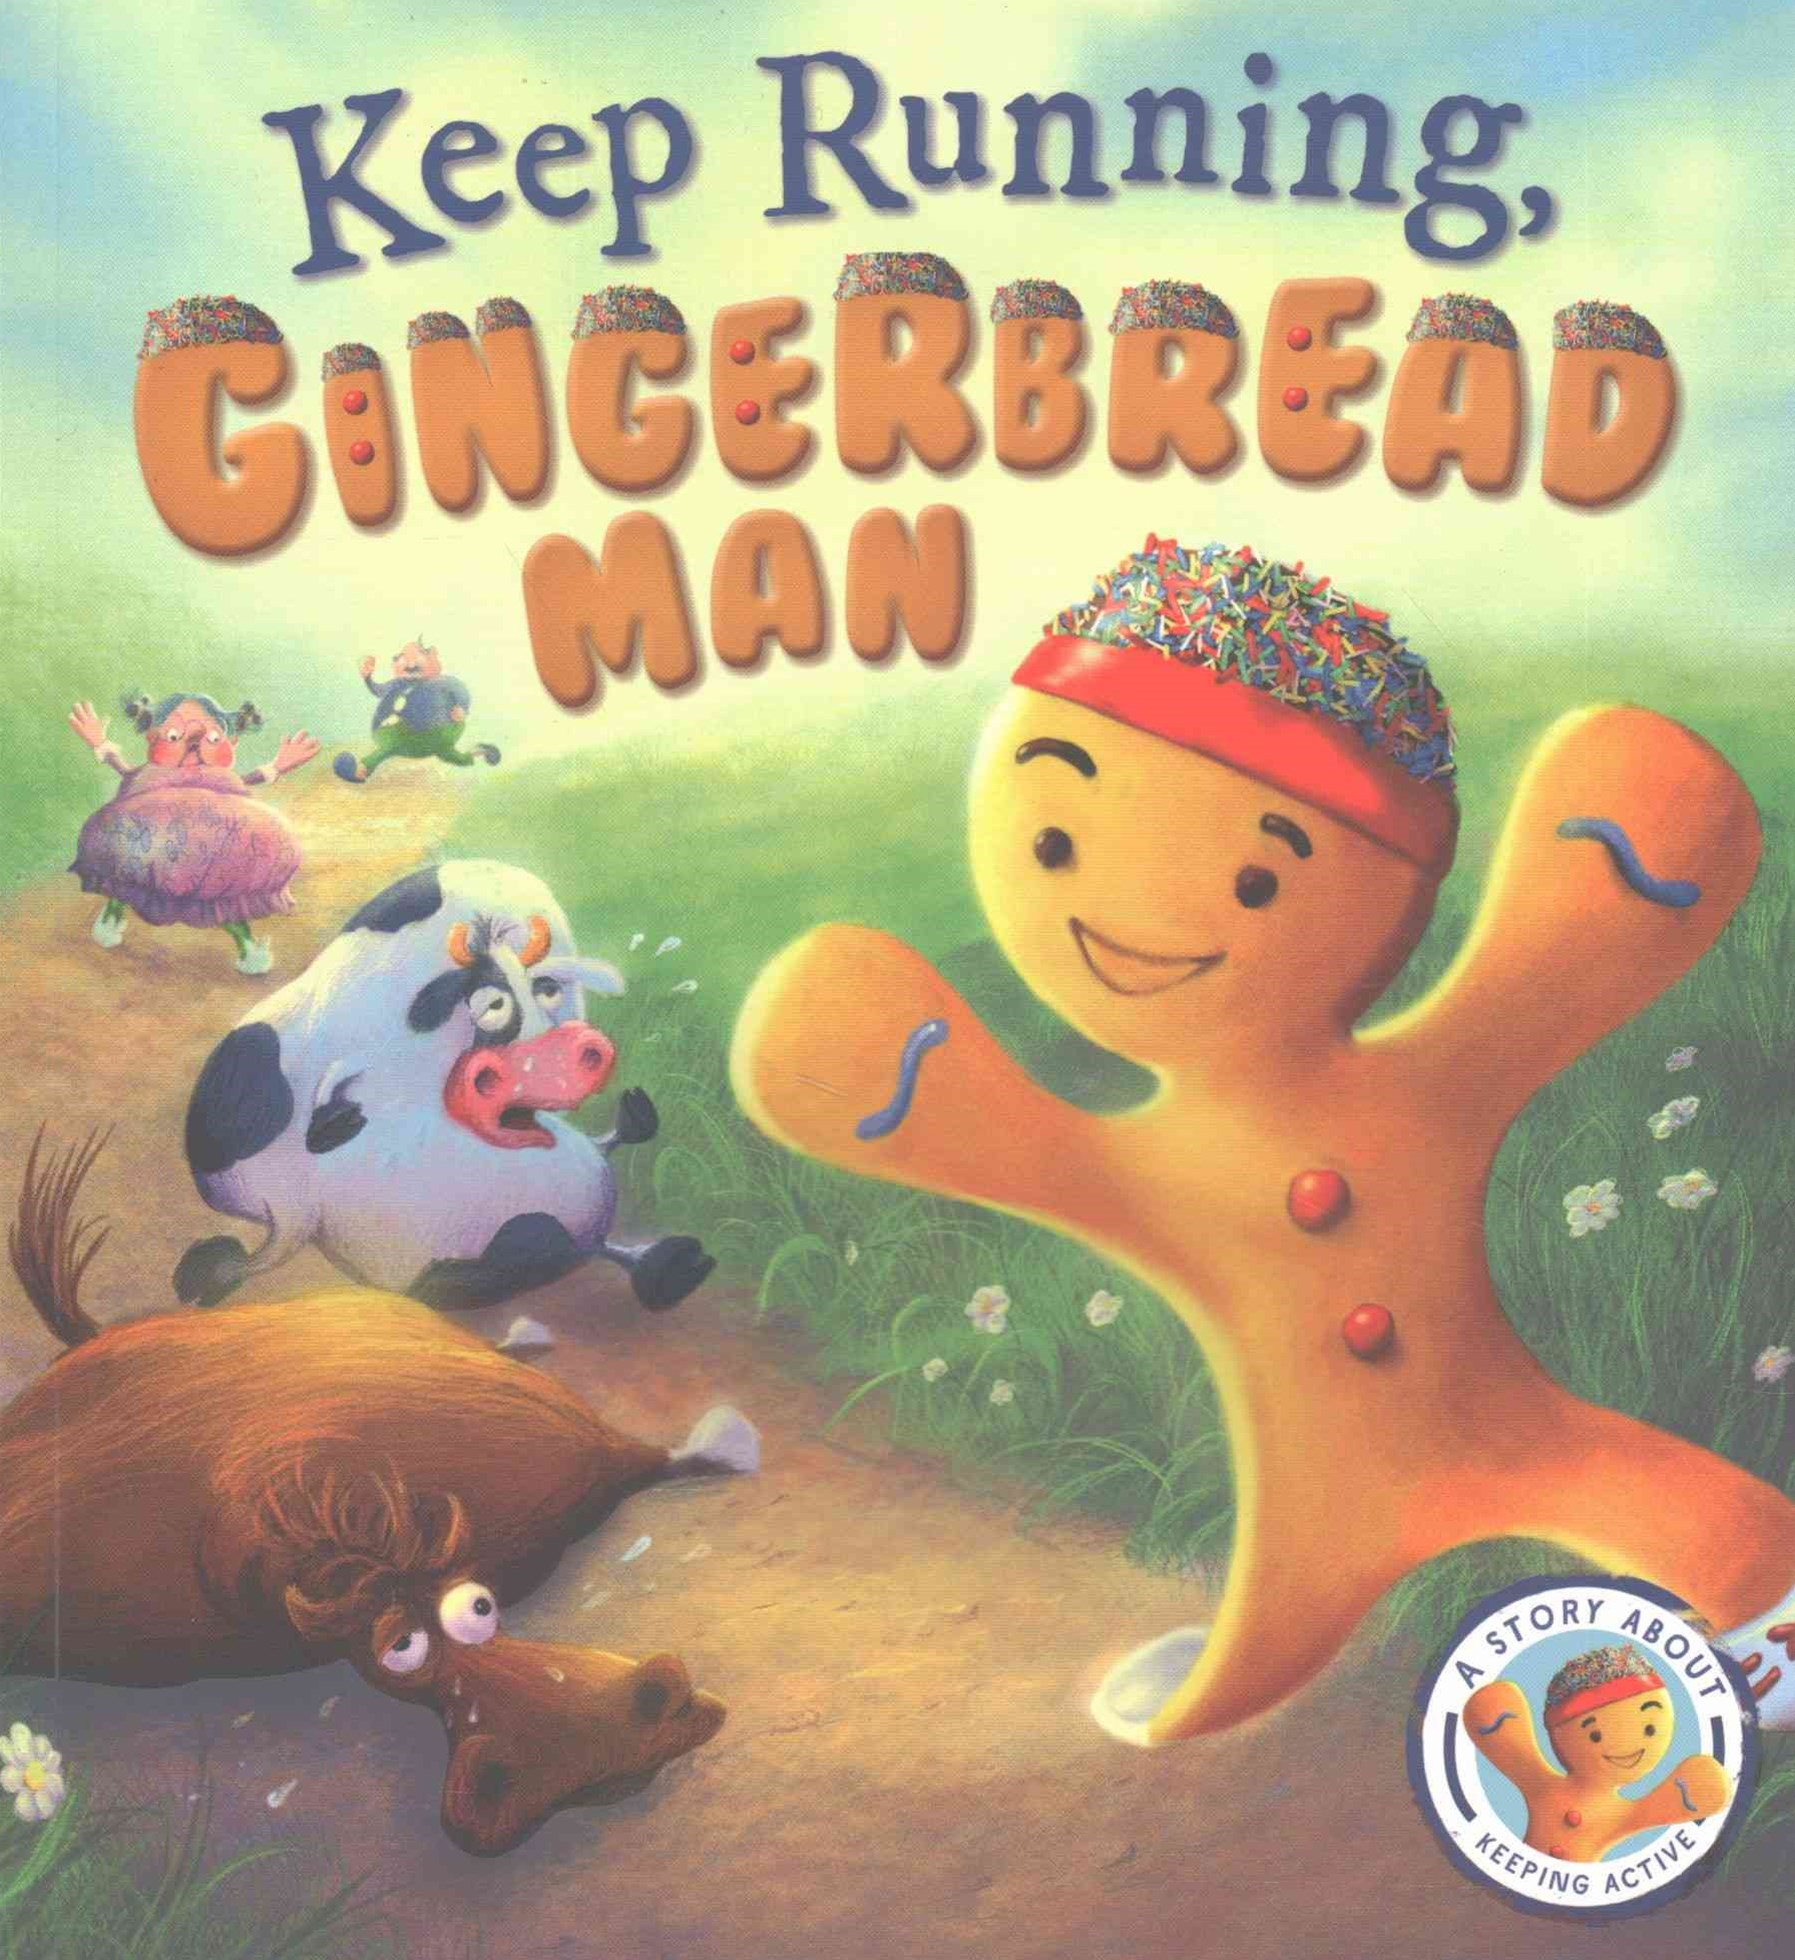 Fairytales Gone Wrong: Keep Running Gingerbread Man